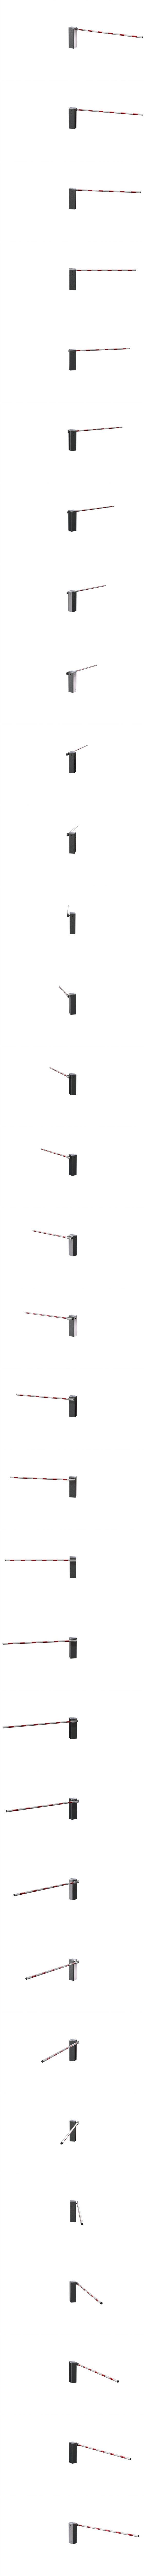 gtr-series-rising-arm-barriers 360